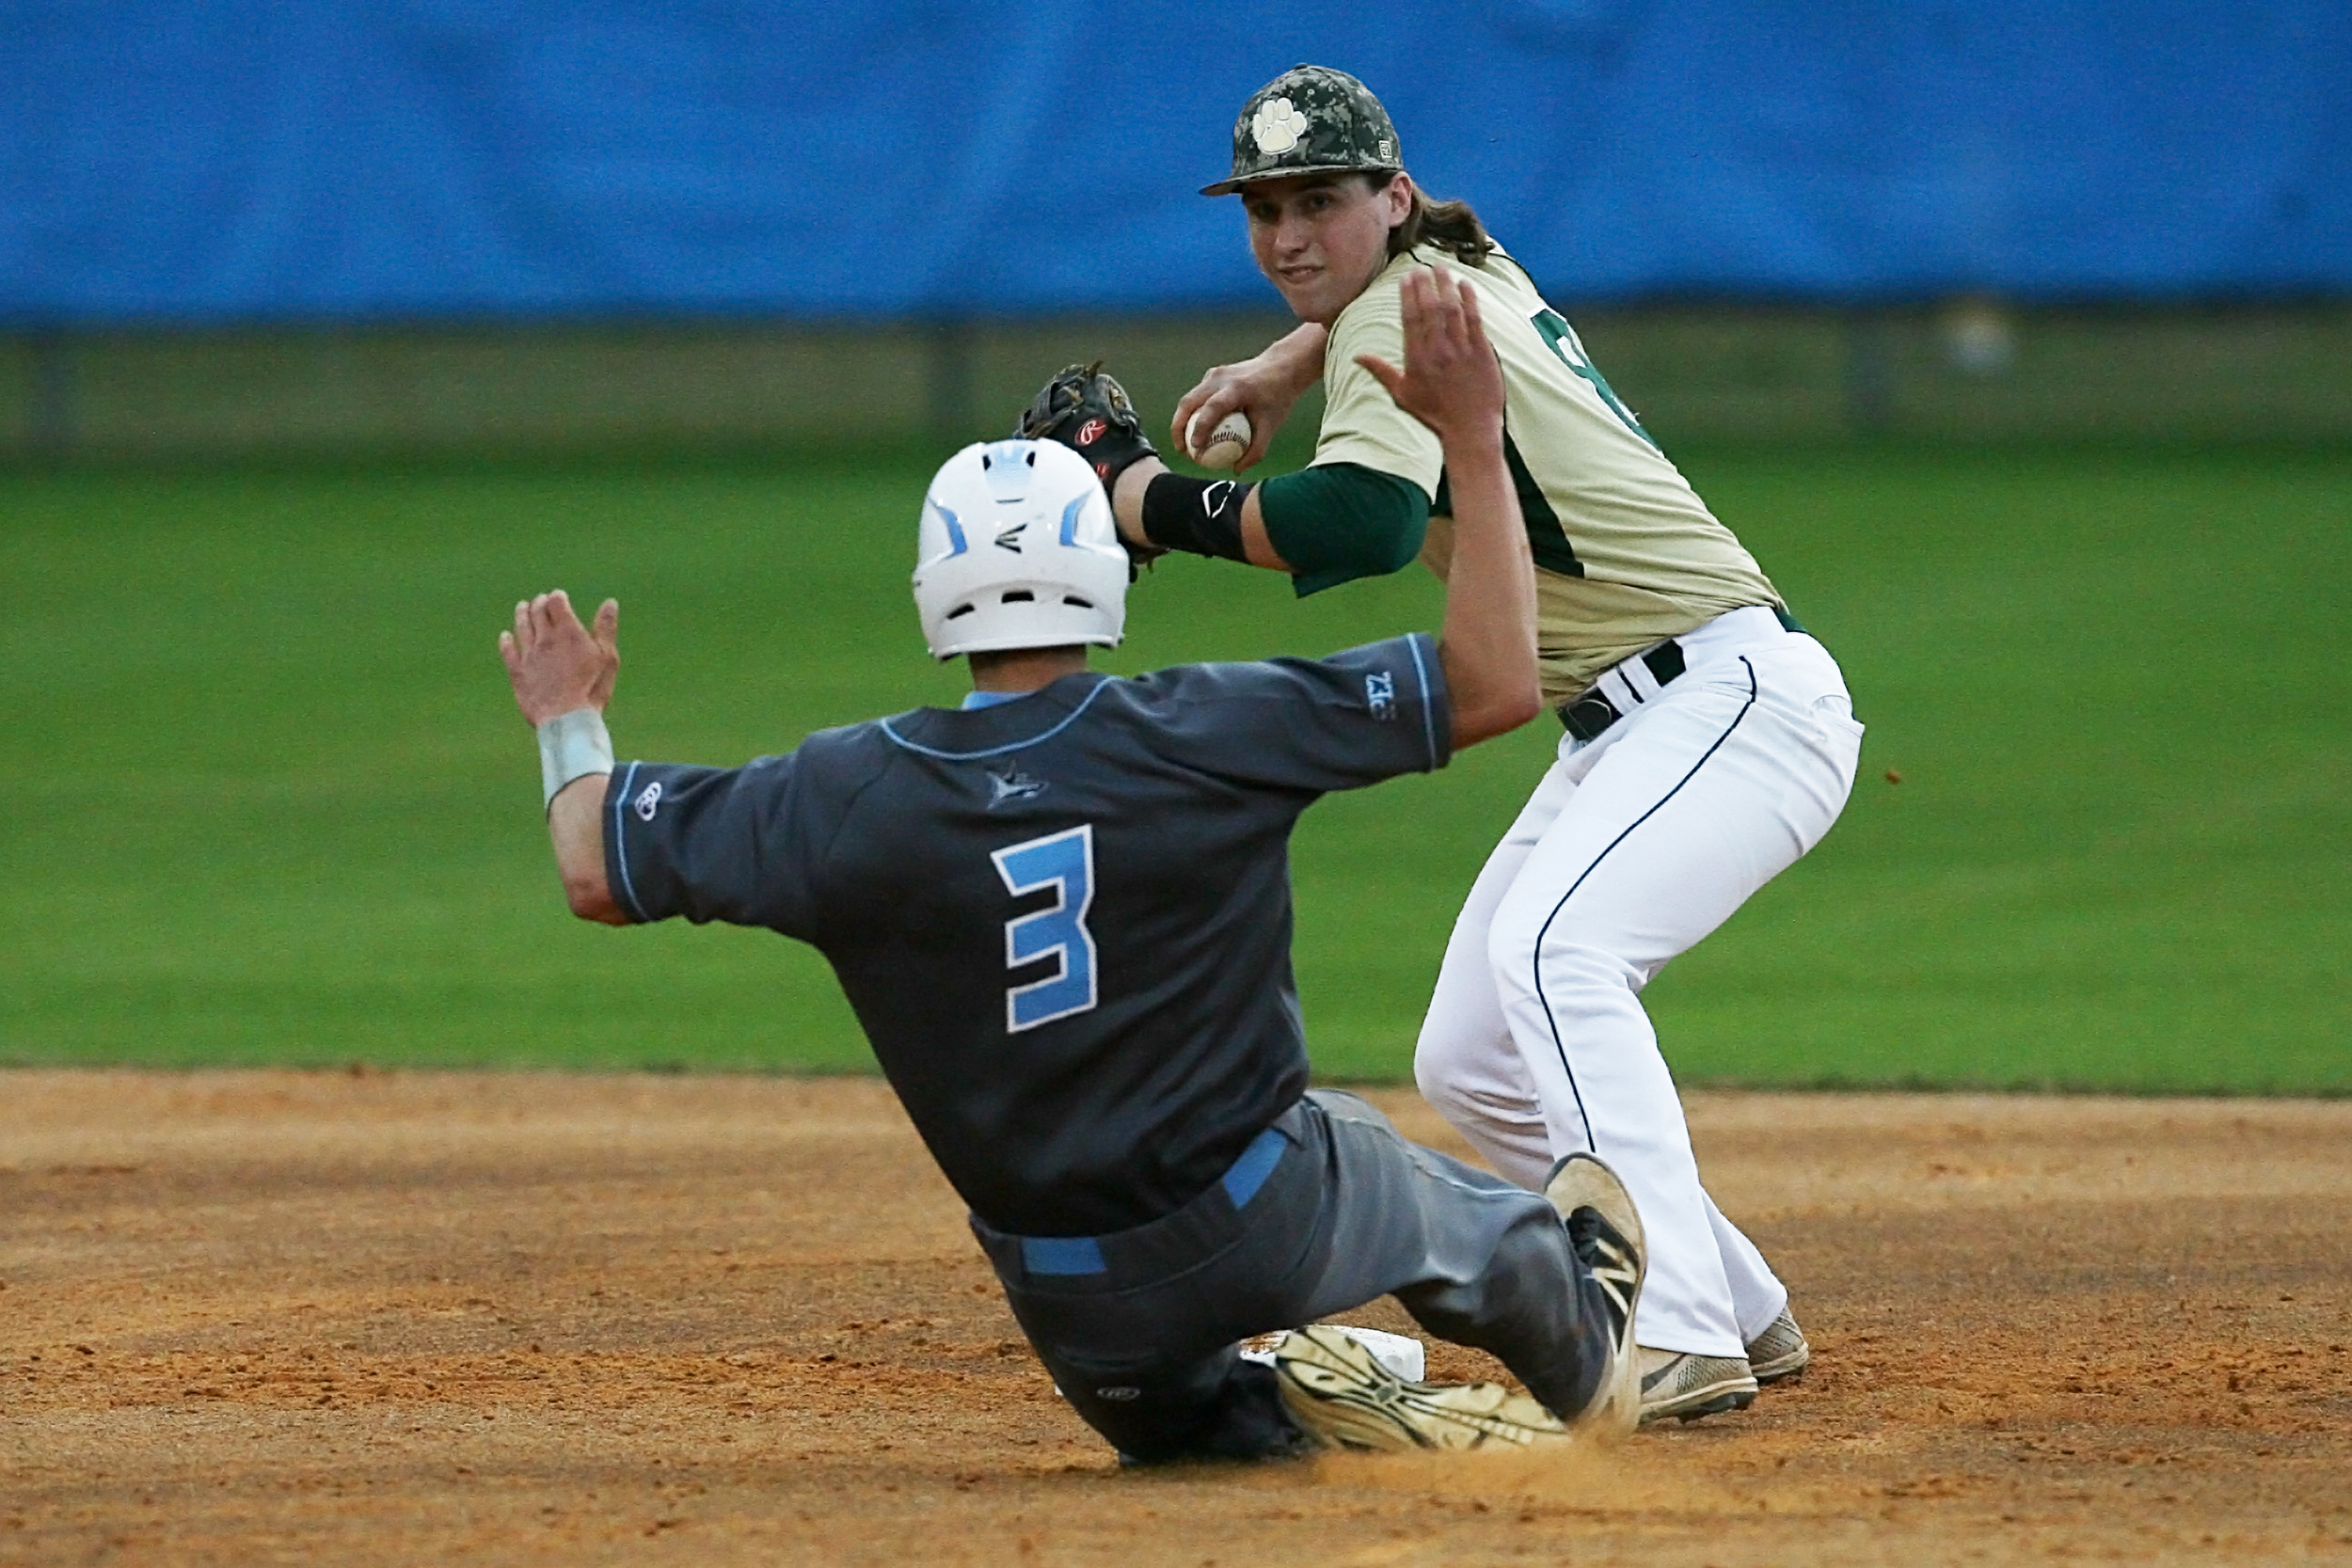 Quinton Brehm is forced out at the front end of a Nease double play. #8 Sean Duncan of the Panthers throws to first to complete the DP